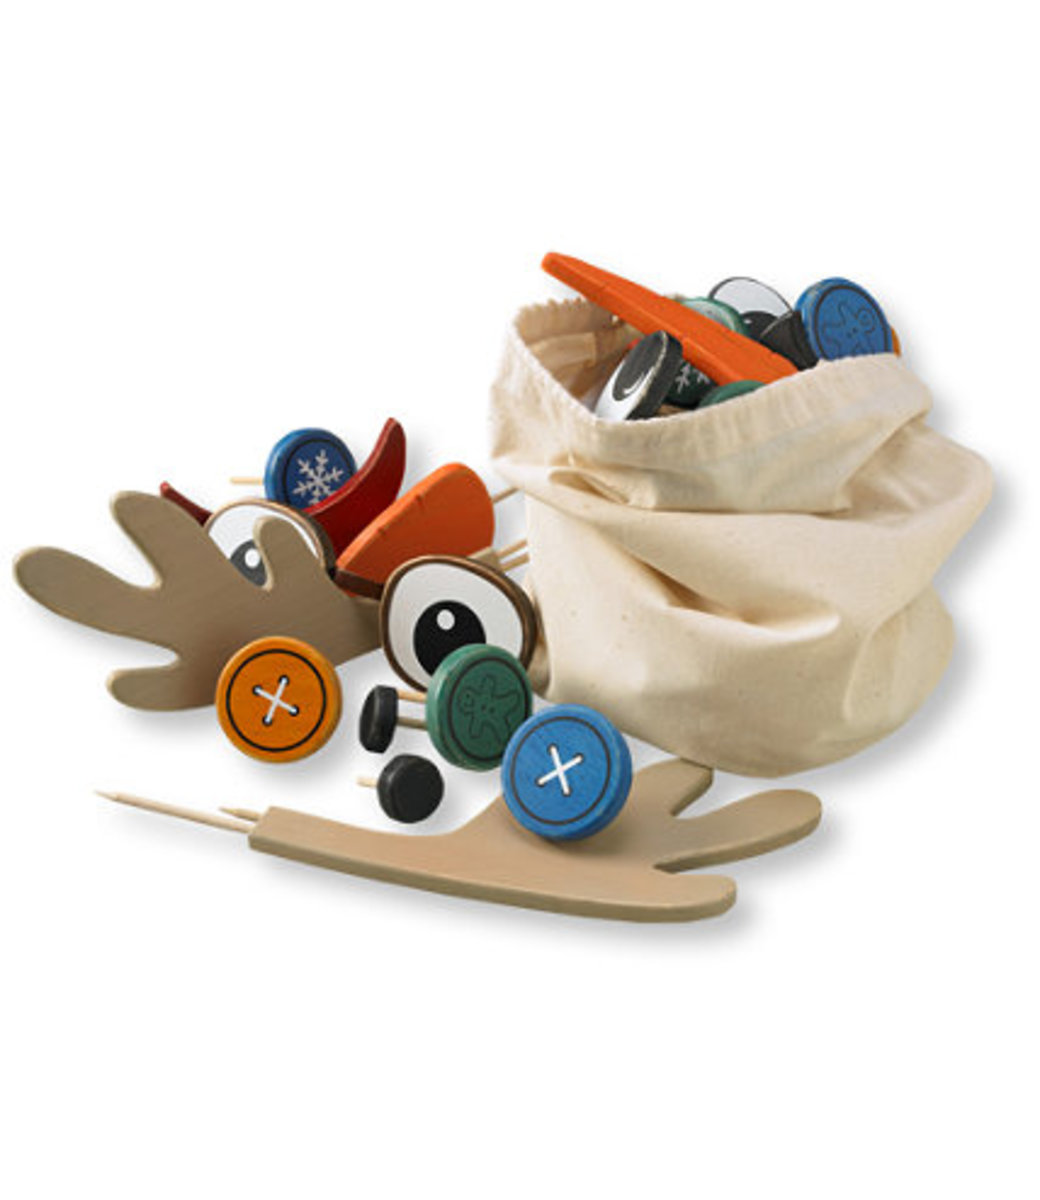 2013 Holiday Gift Guide - Hard to Shop for People- Snowman Kit - TodaysMama.com